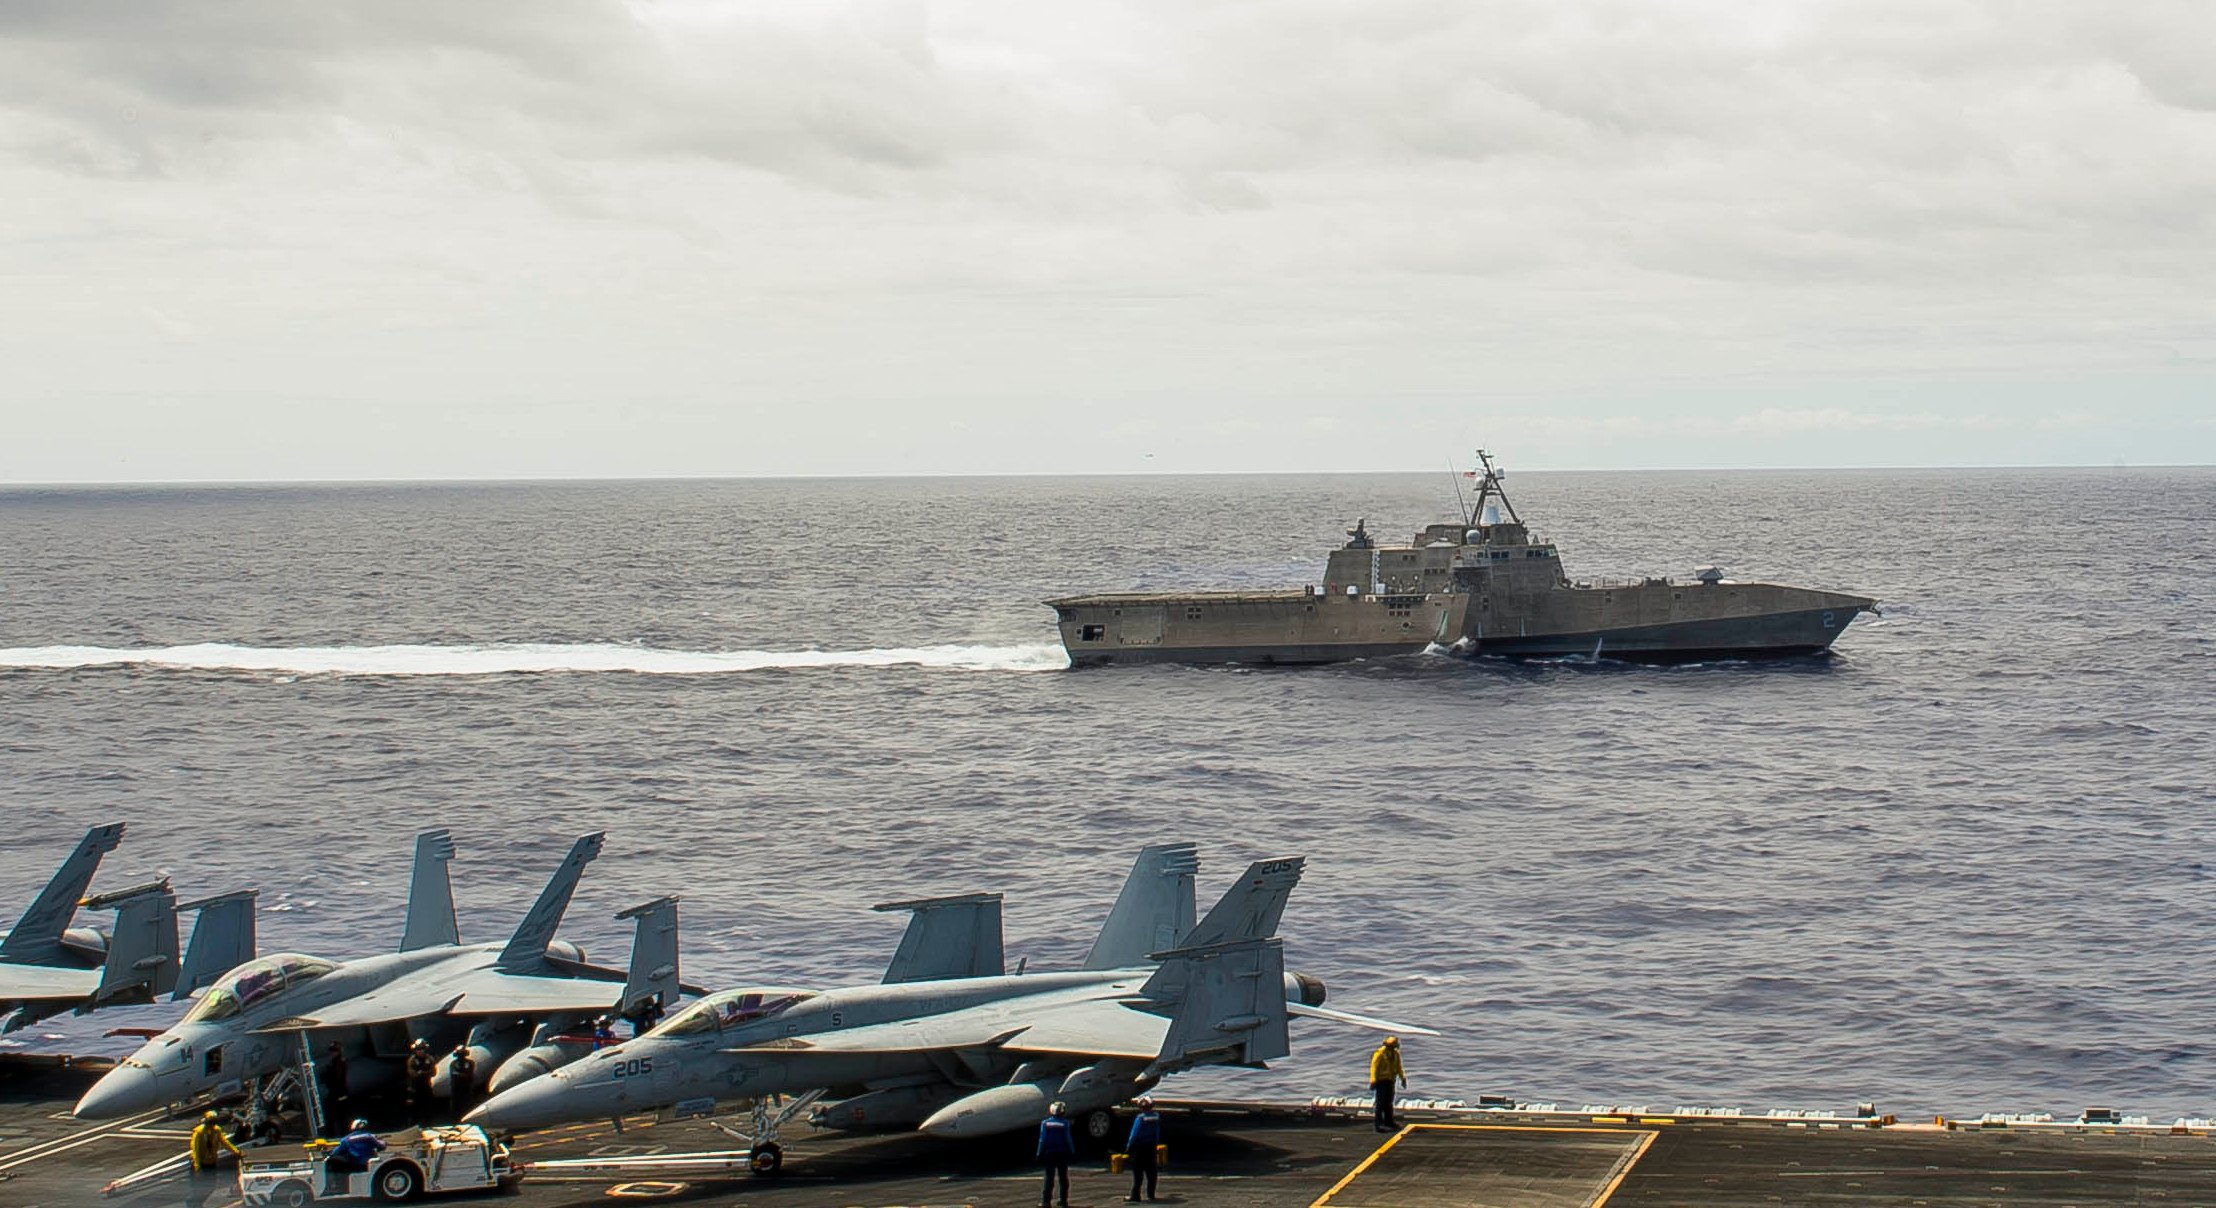 USS Ronald Reagan (CVN-76) and the littoral combat ship USS Independence (LCS-2) conduct maneuvers during Rim of the Pacific (RIMPAC) on July 11, 2014. US Navy Photo